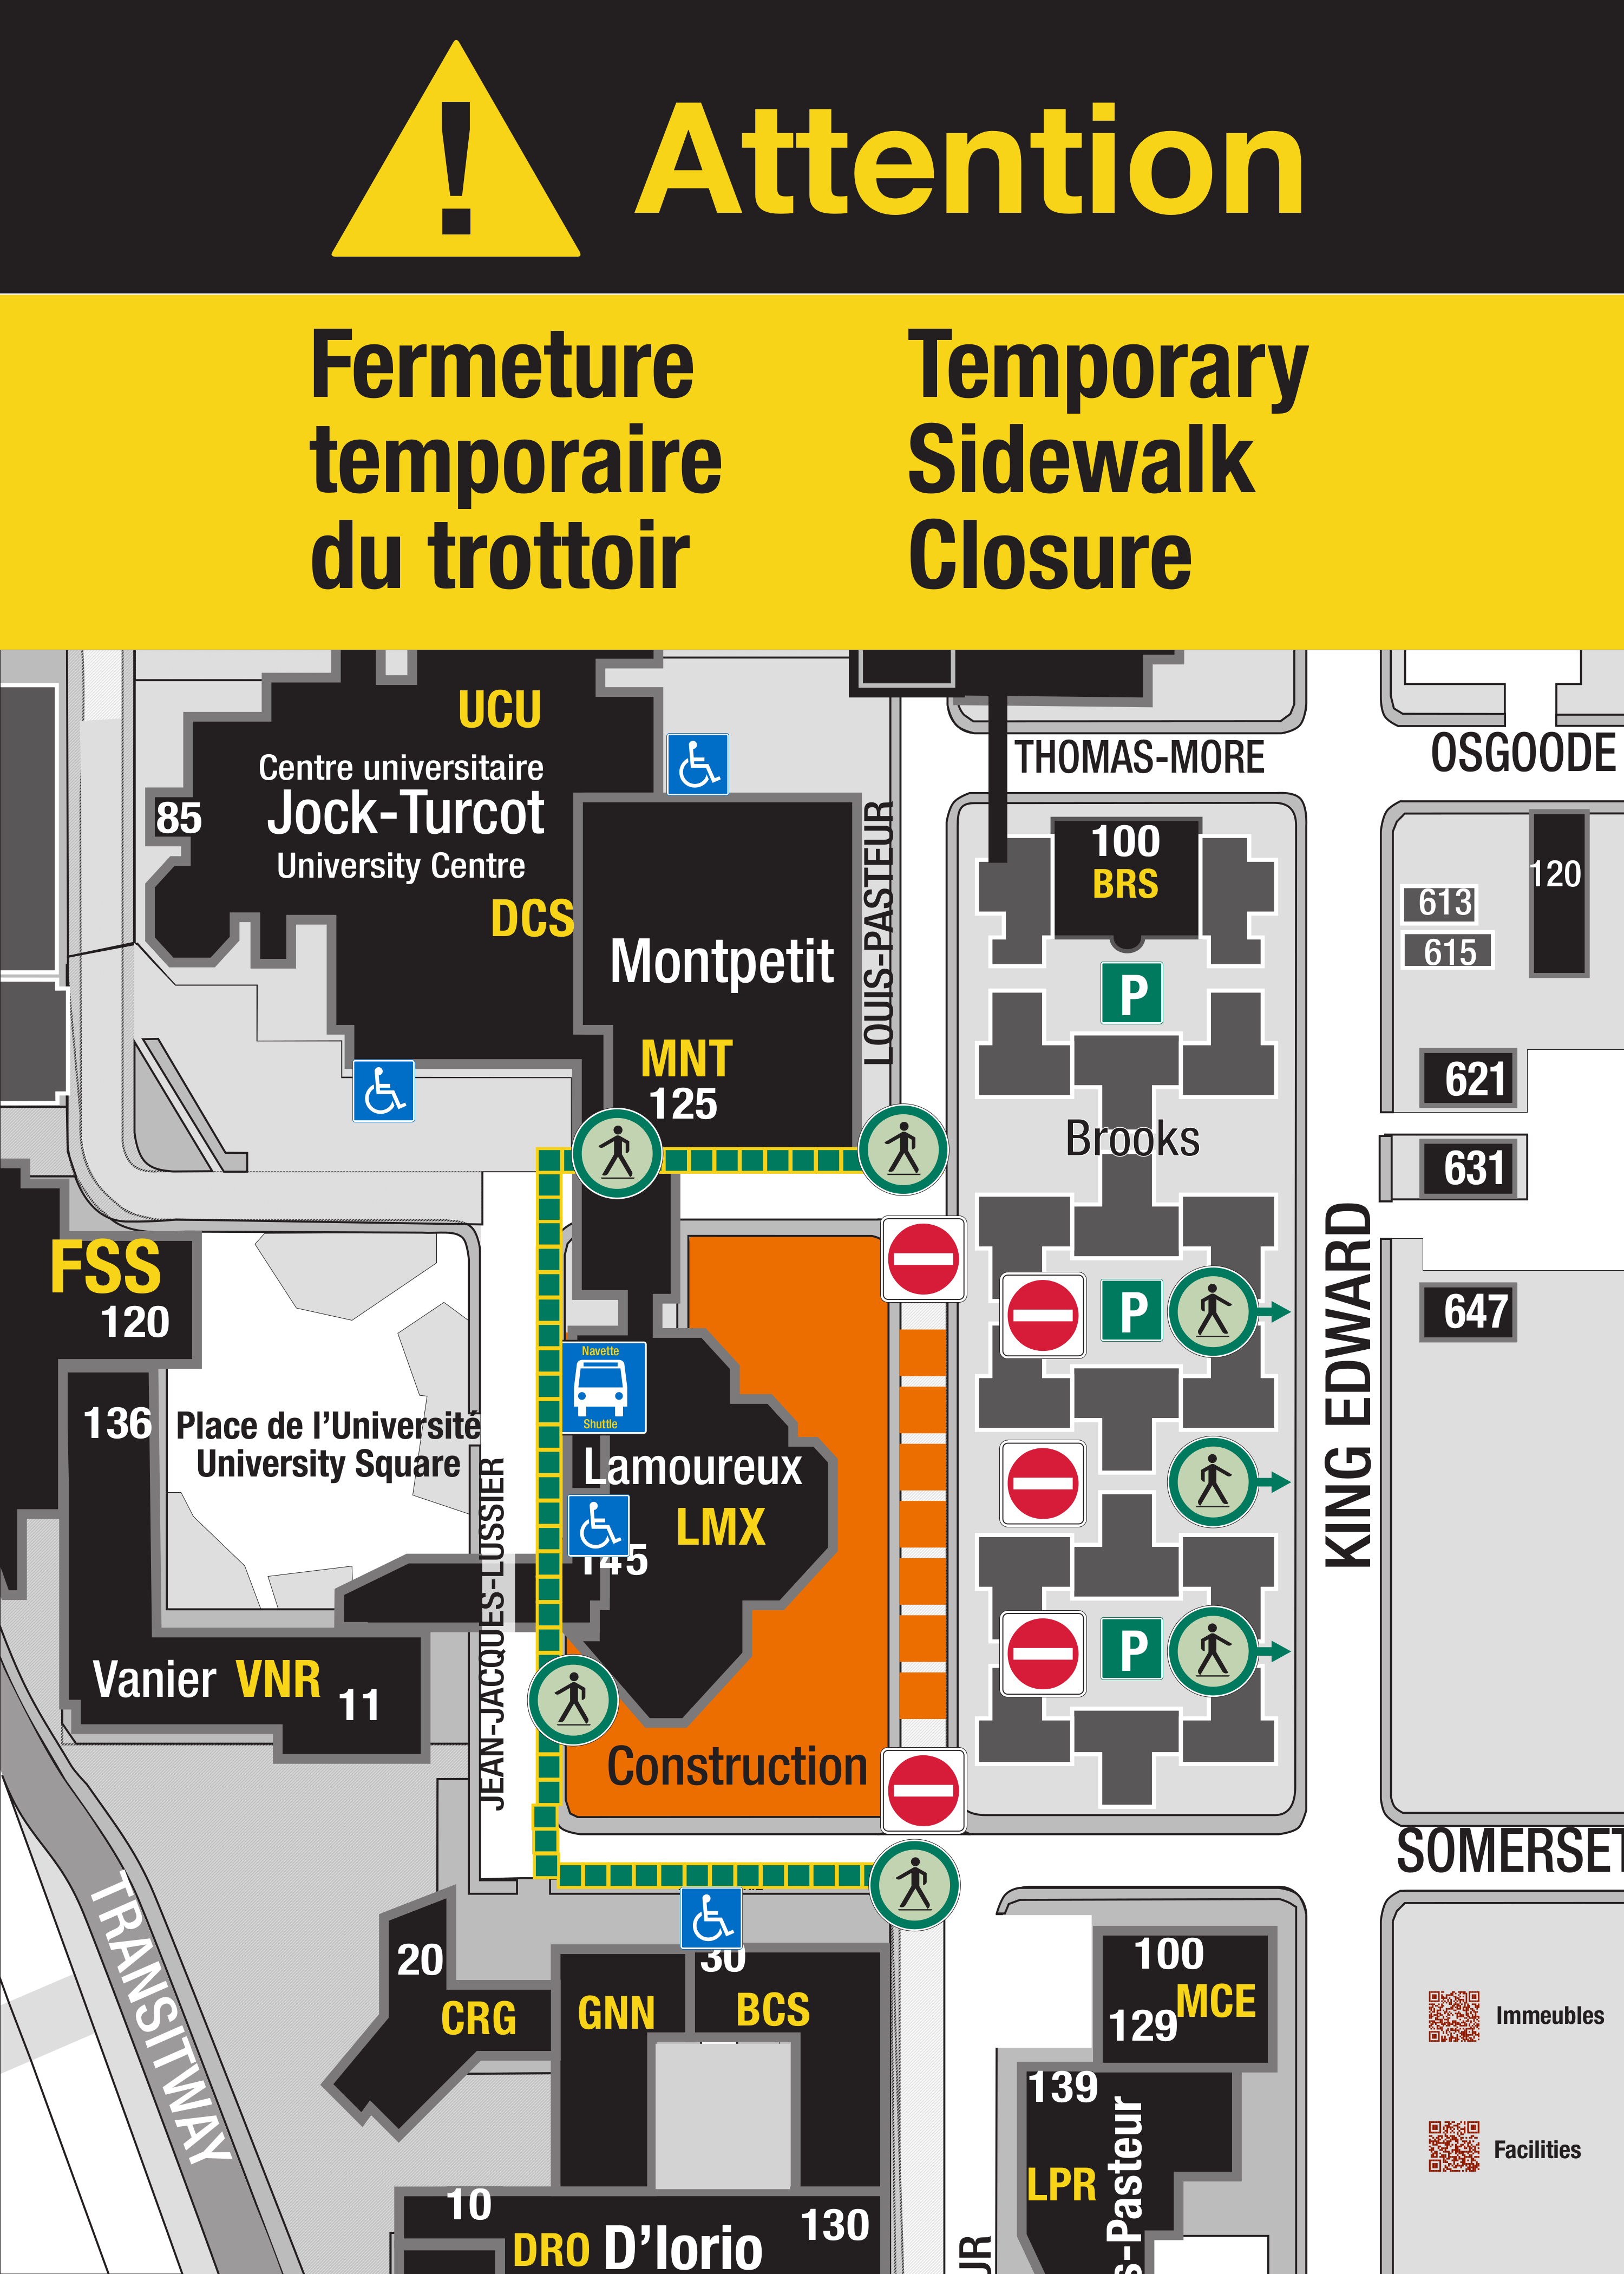 Please be advised that the pedestrian footpath between Lamoureux and the Brooks Residences will be closed; pedestrians will be redirected around those buildings and onto Jean-Jacques-Lussier or King Edward Avenue.